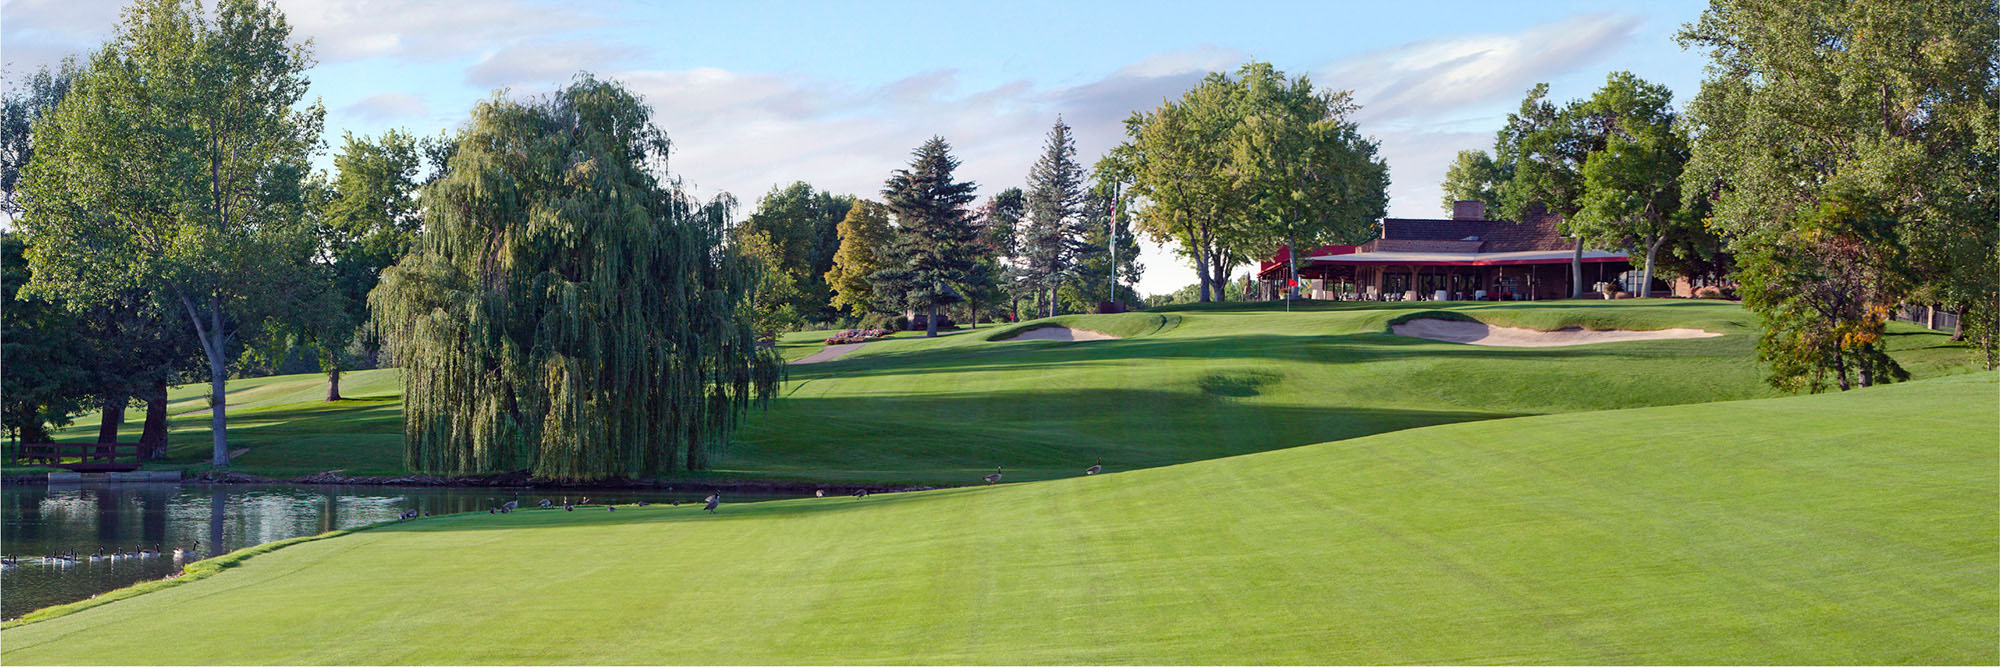 Golf Course Image - Cherry Hills Country Club No. 18